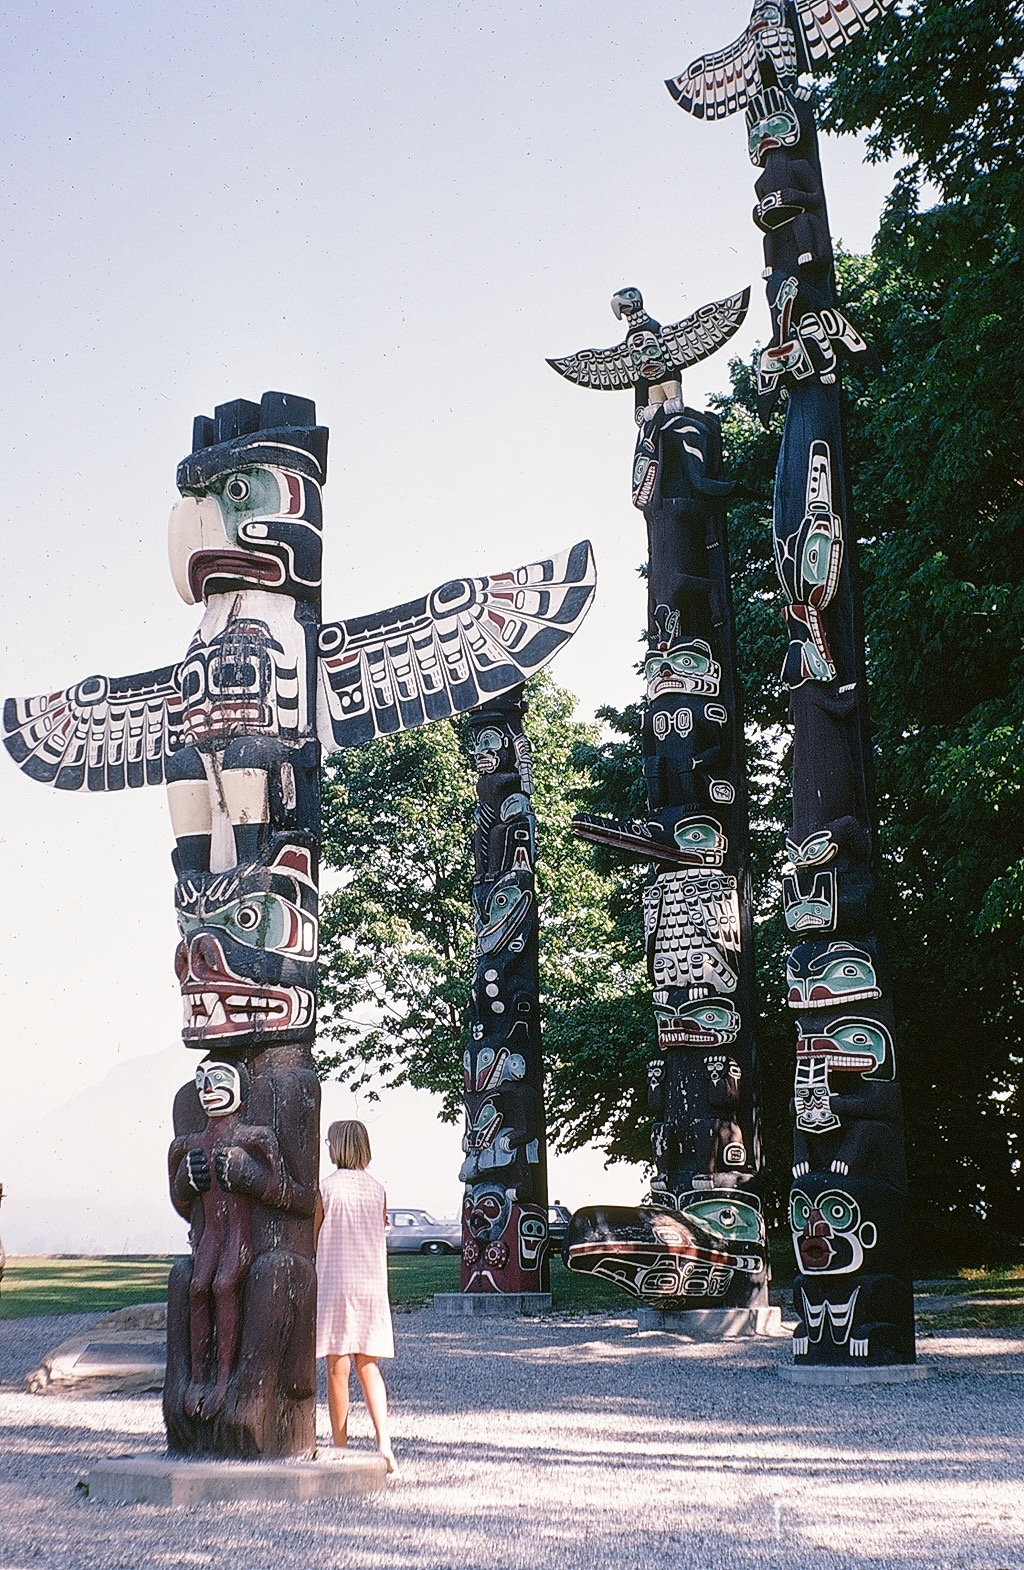 VIC PARK TOTEMS